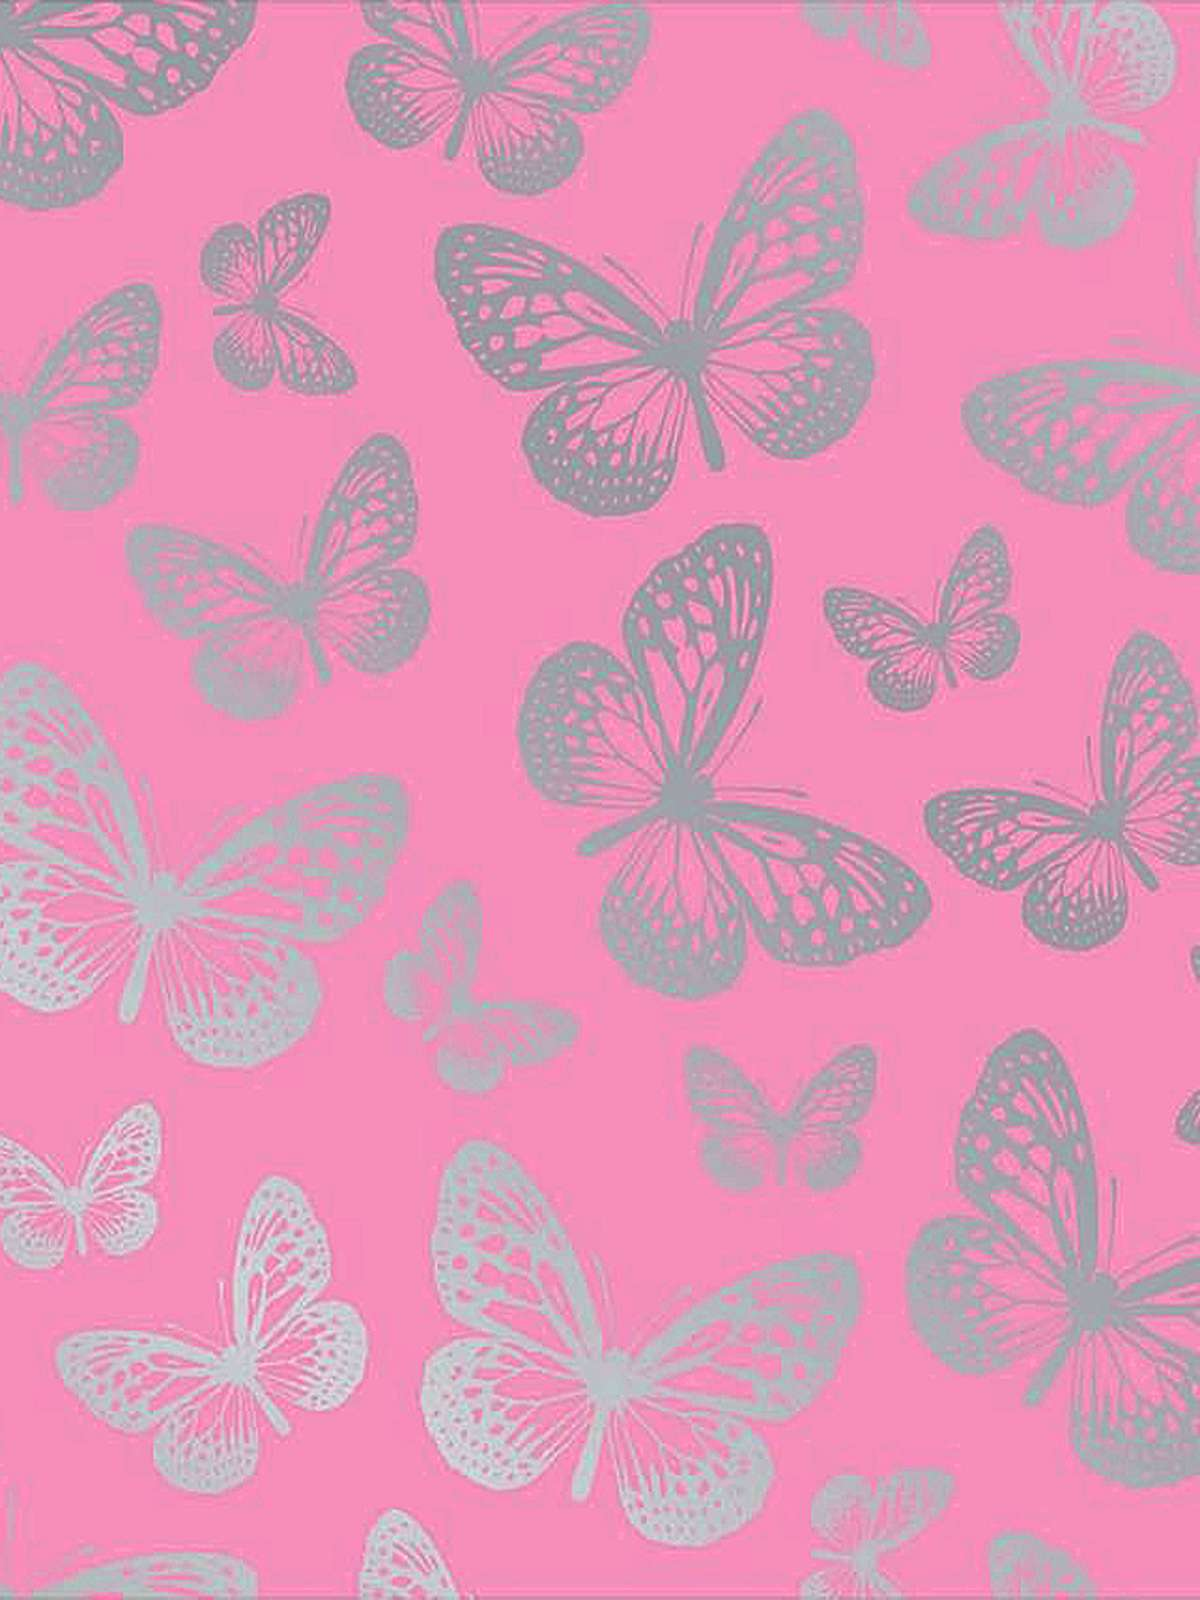 butterfly definition paper Essays and criticism on david henry hwang's m butterfly - m butterfly david henry hwang  m butterfly david henry hwang - essay  this paper.